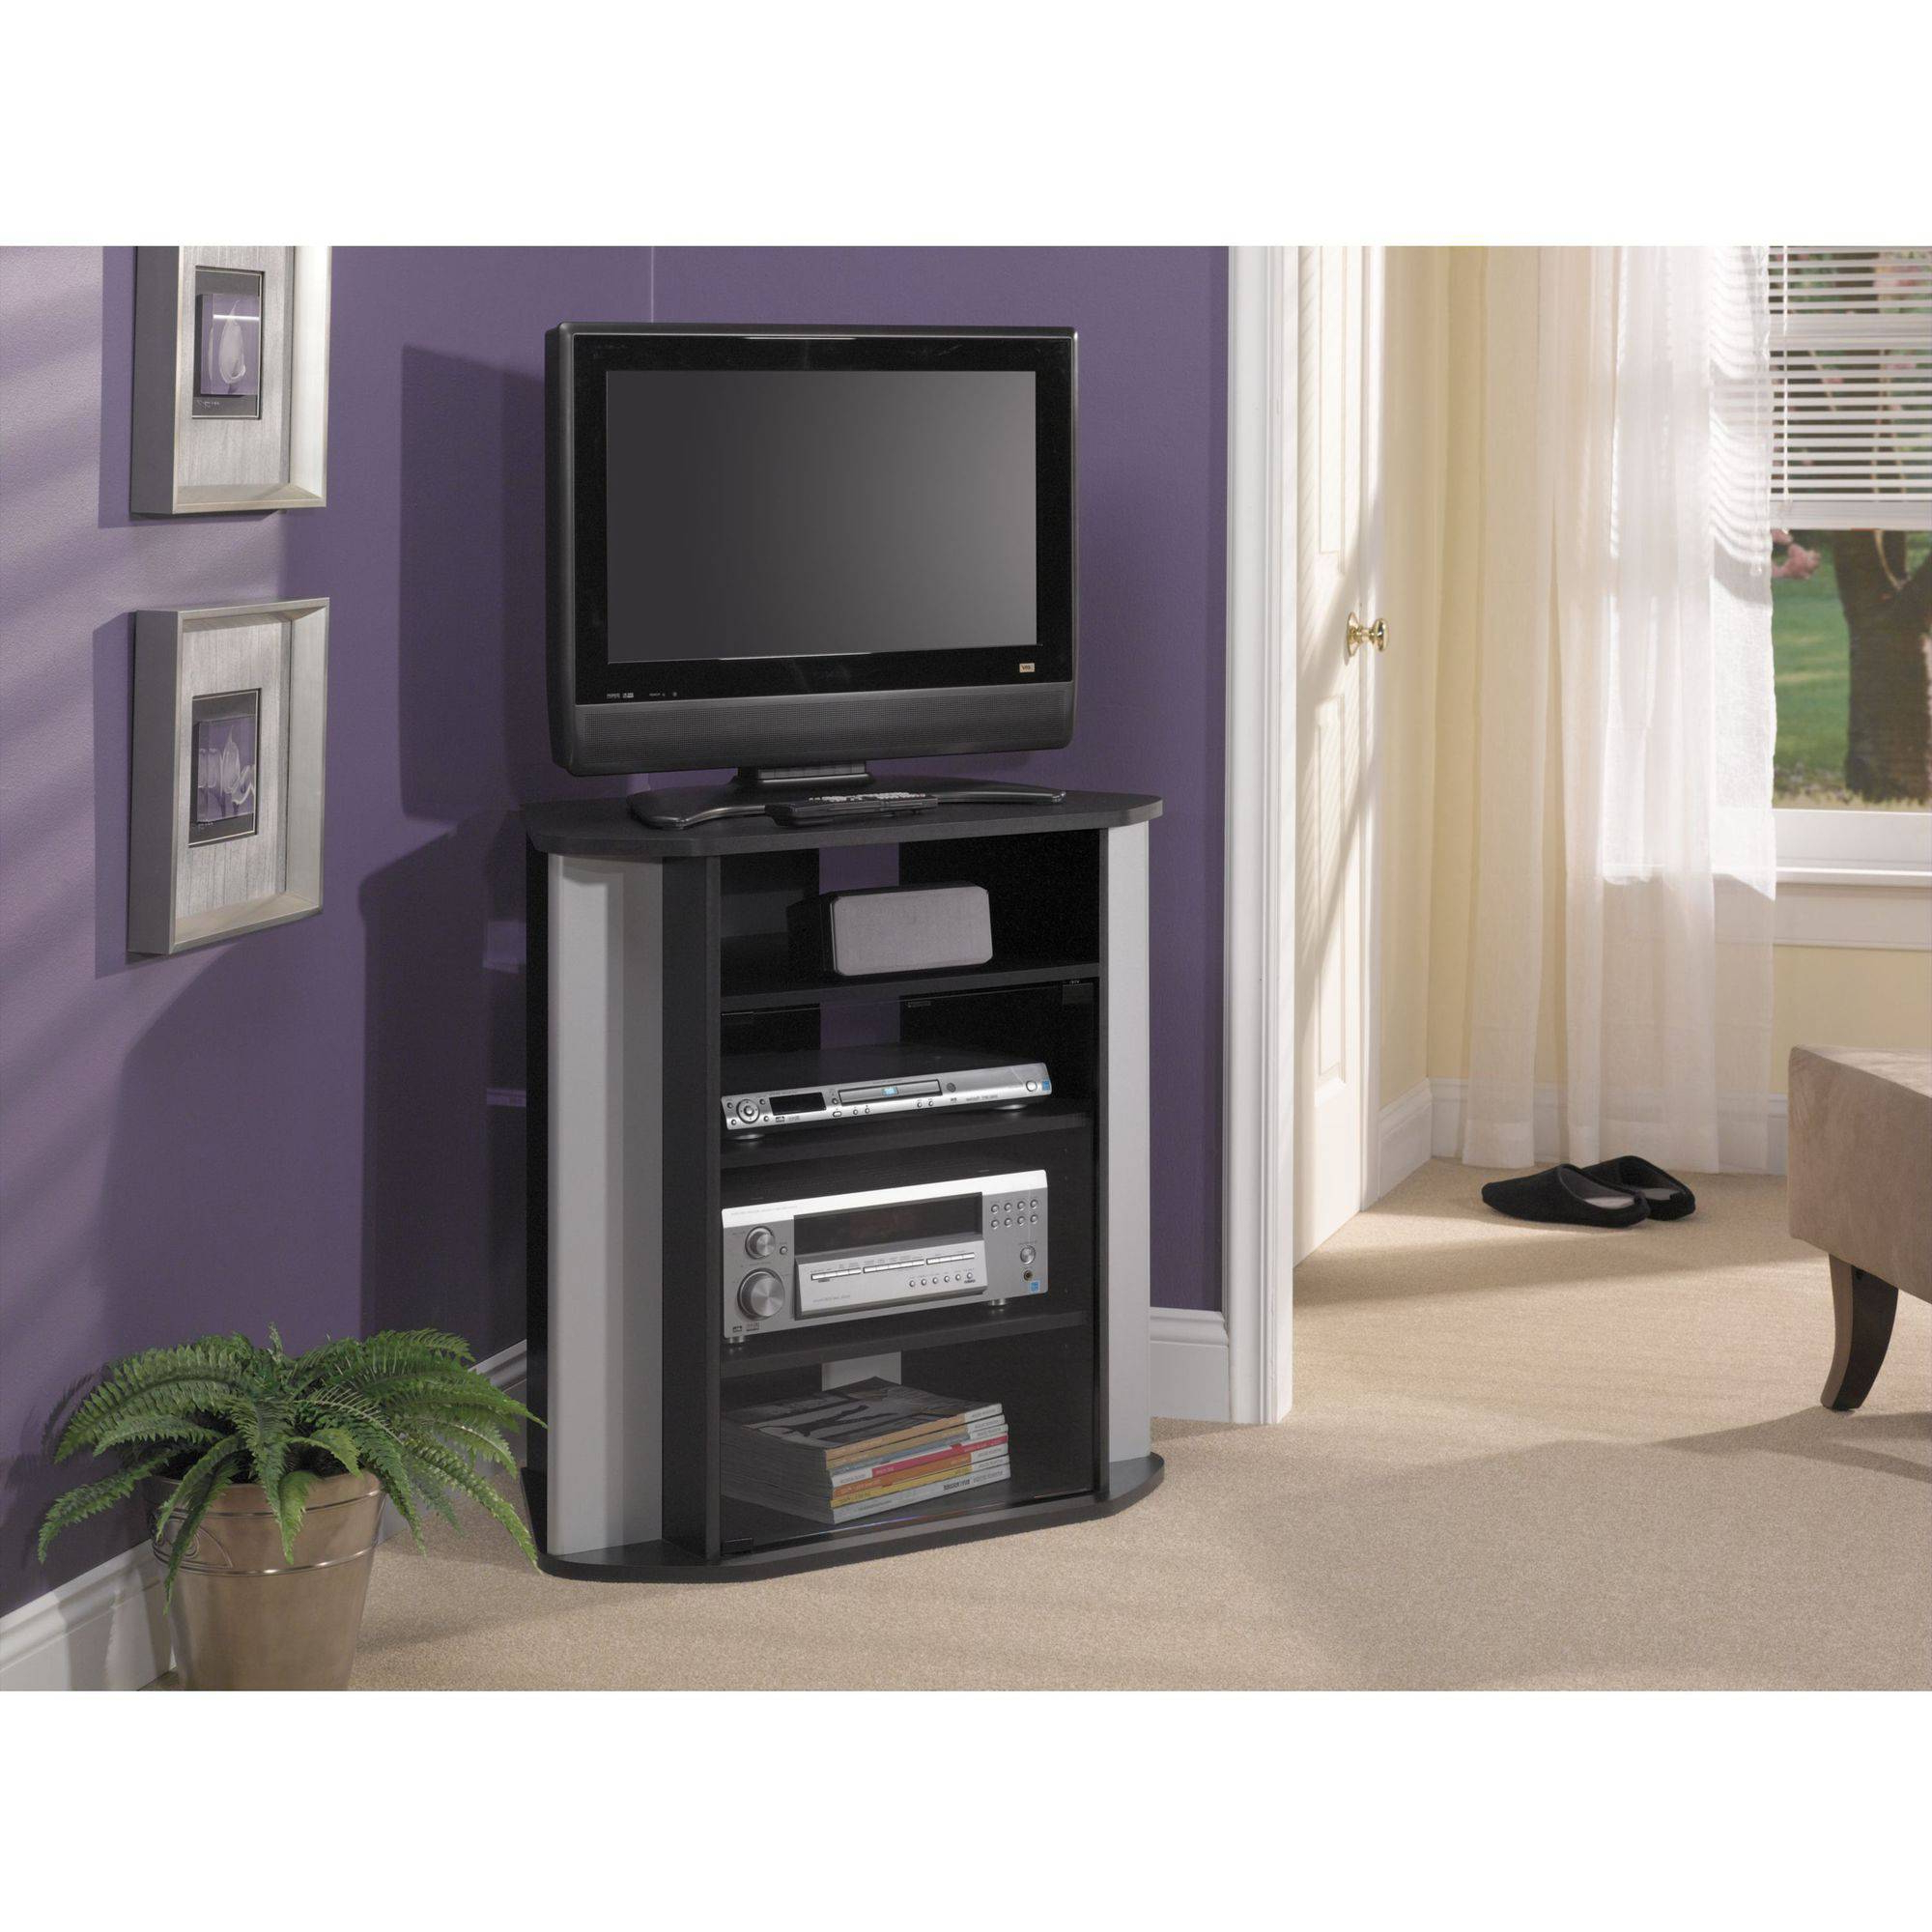 Bush Furniture Visions Tall Corner Tv Stand In Black And Metallic Inside Trendy Corner Tv Unit With Glass Doors (View 18 of 20)